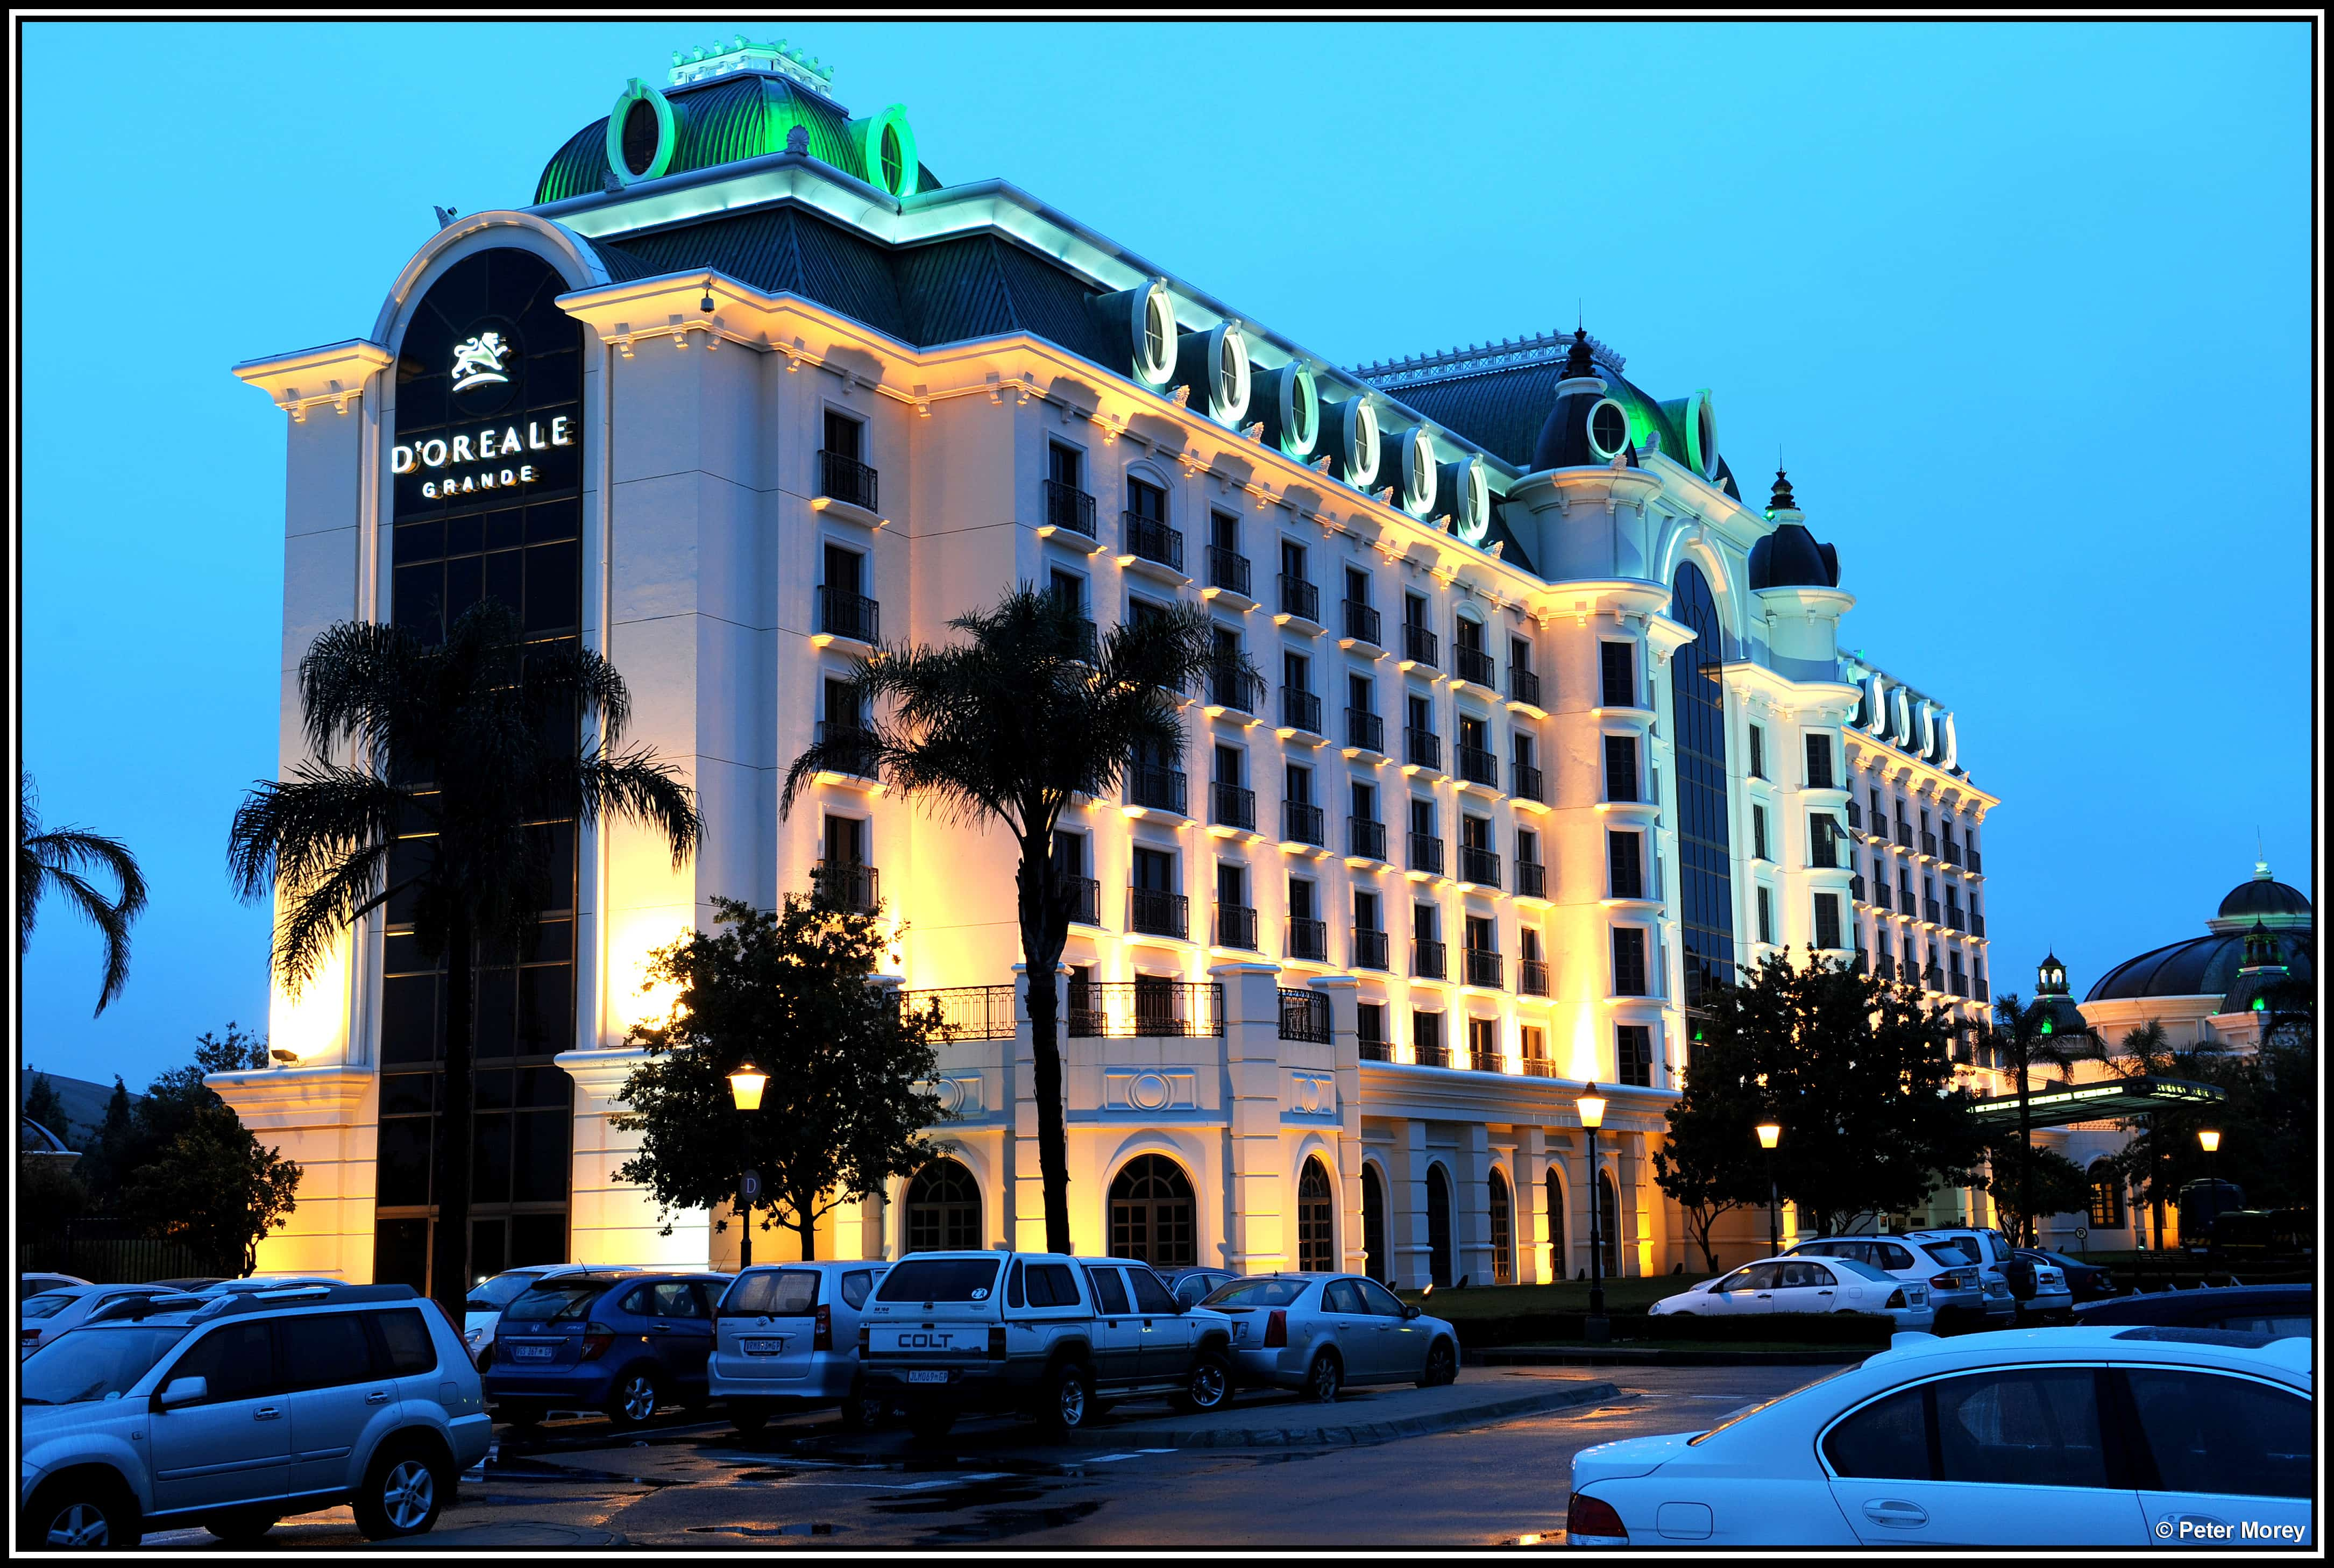 Peermont D Oreale Grande Hotel At Emperors Palace